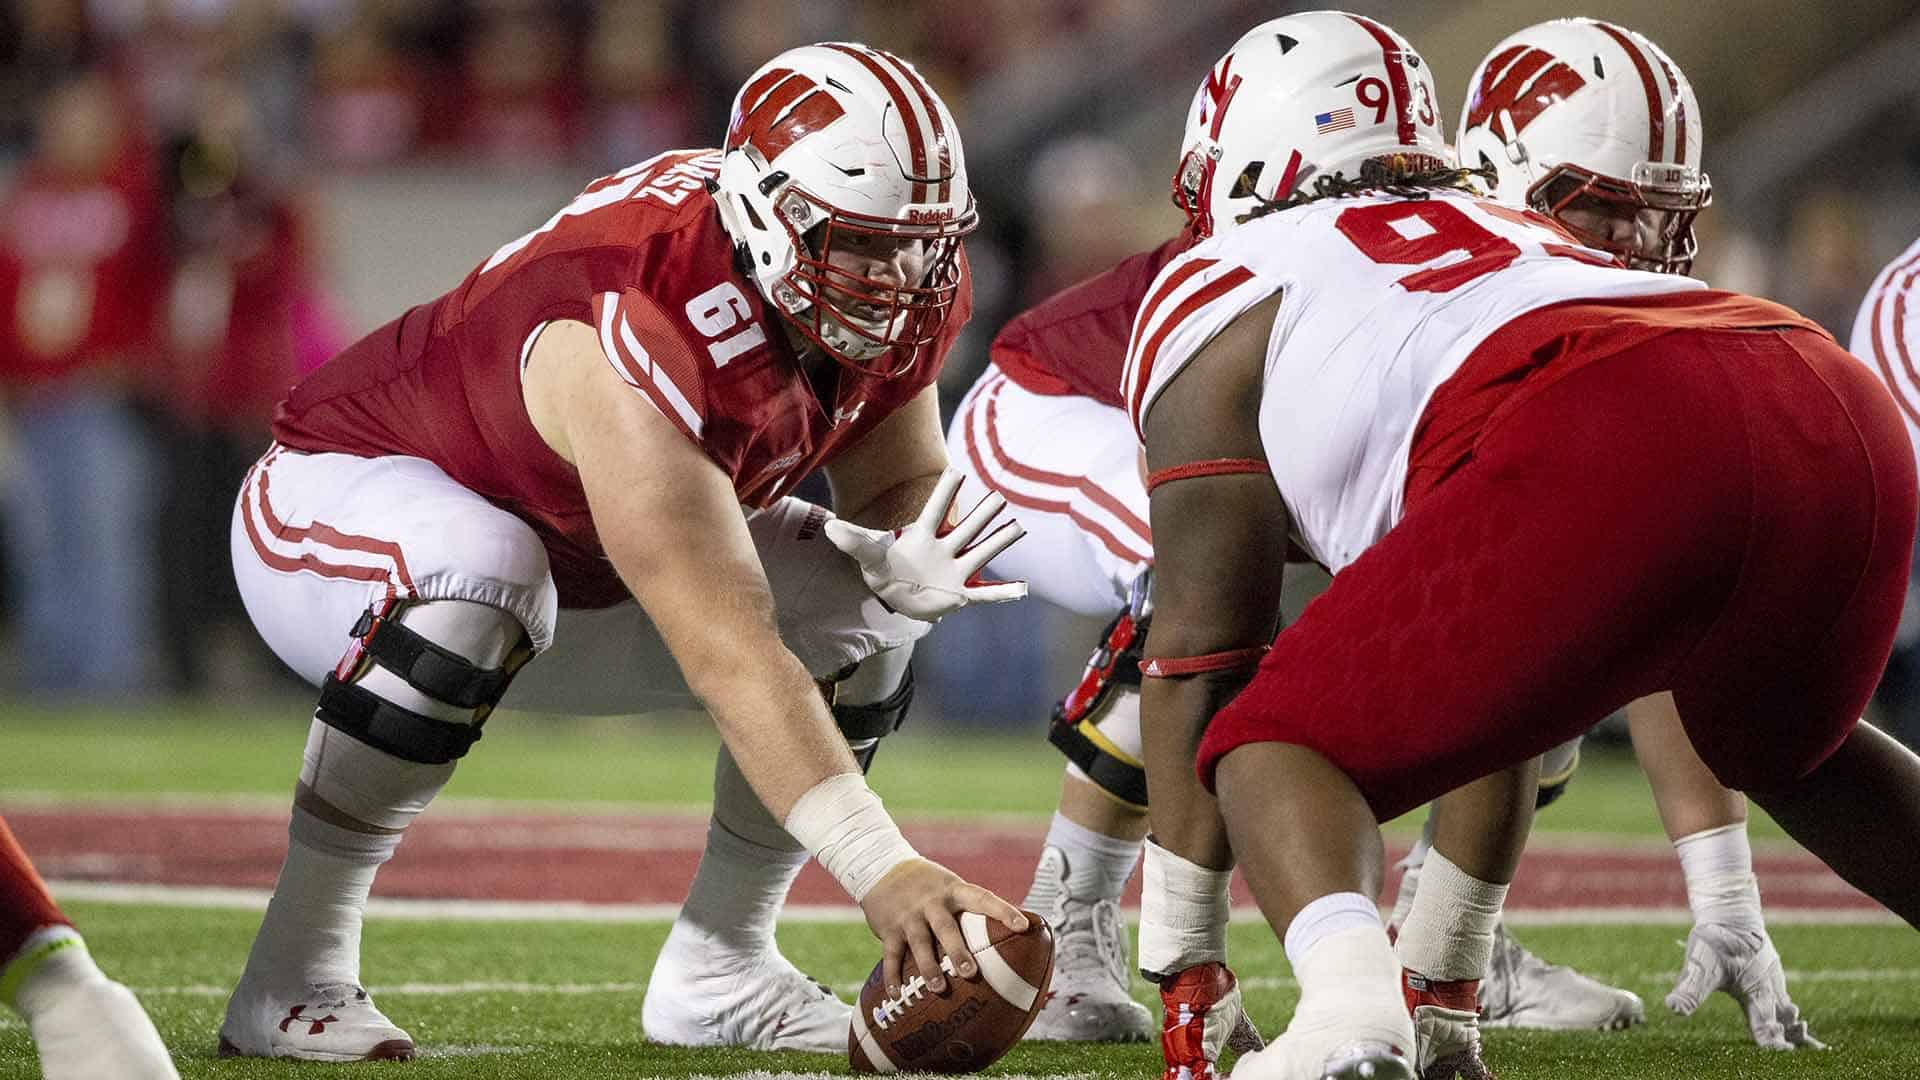 Nfl Best Offensive Lines 2020 2020 NFL Draft: Ranking the interior offensive linemen